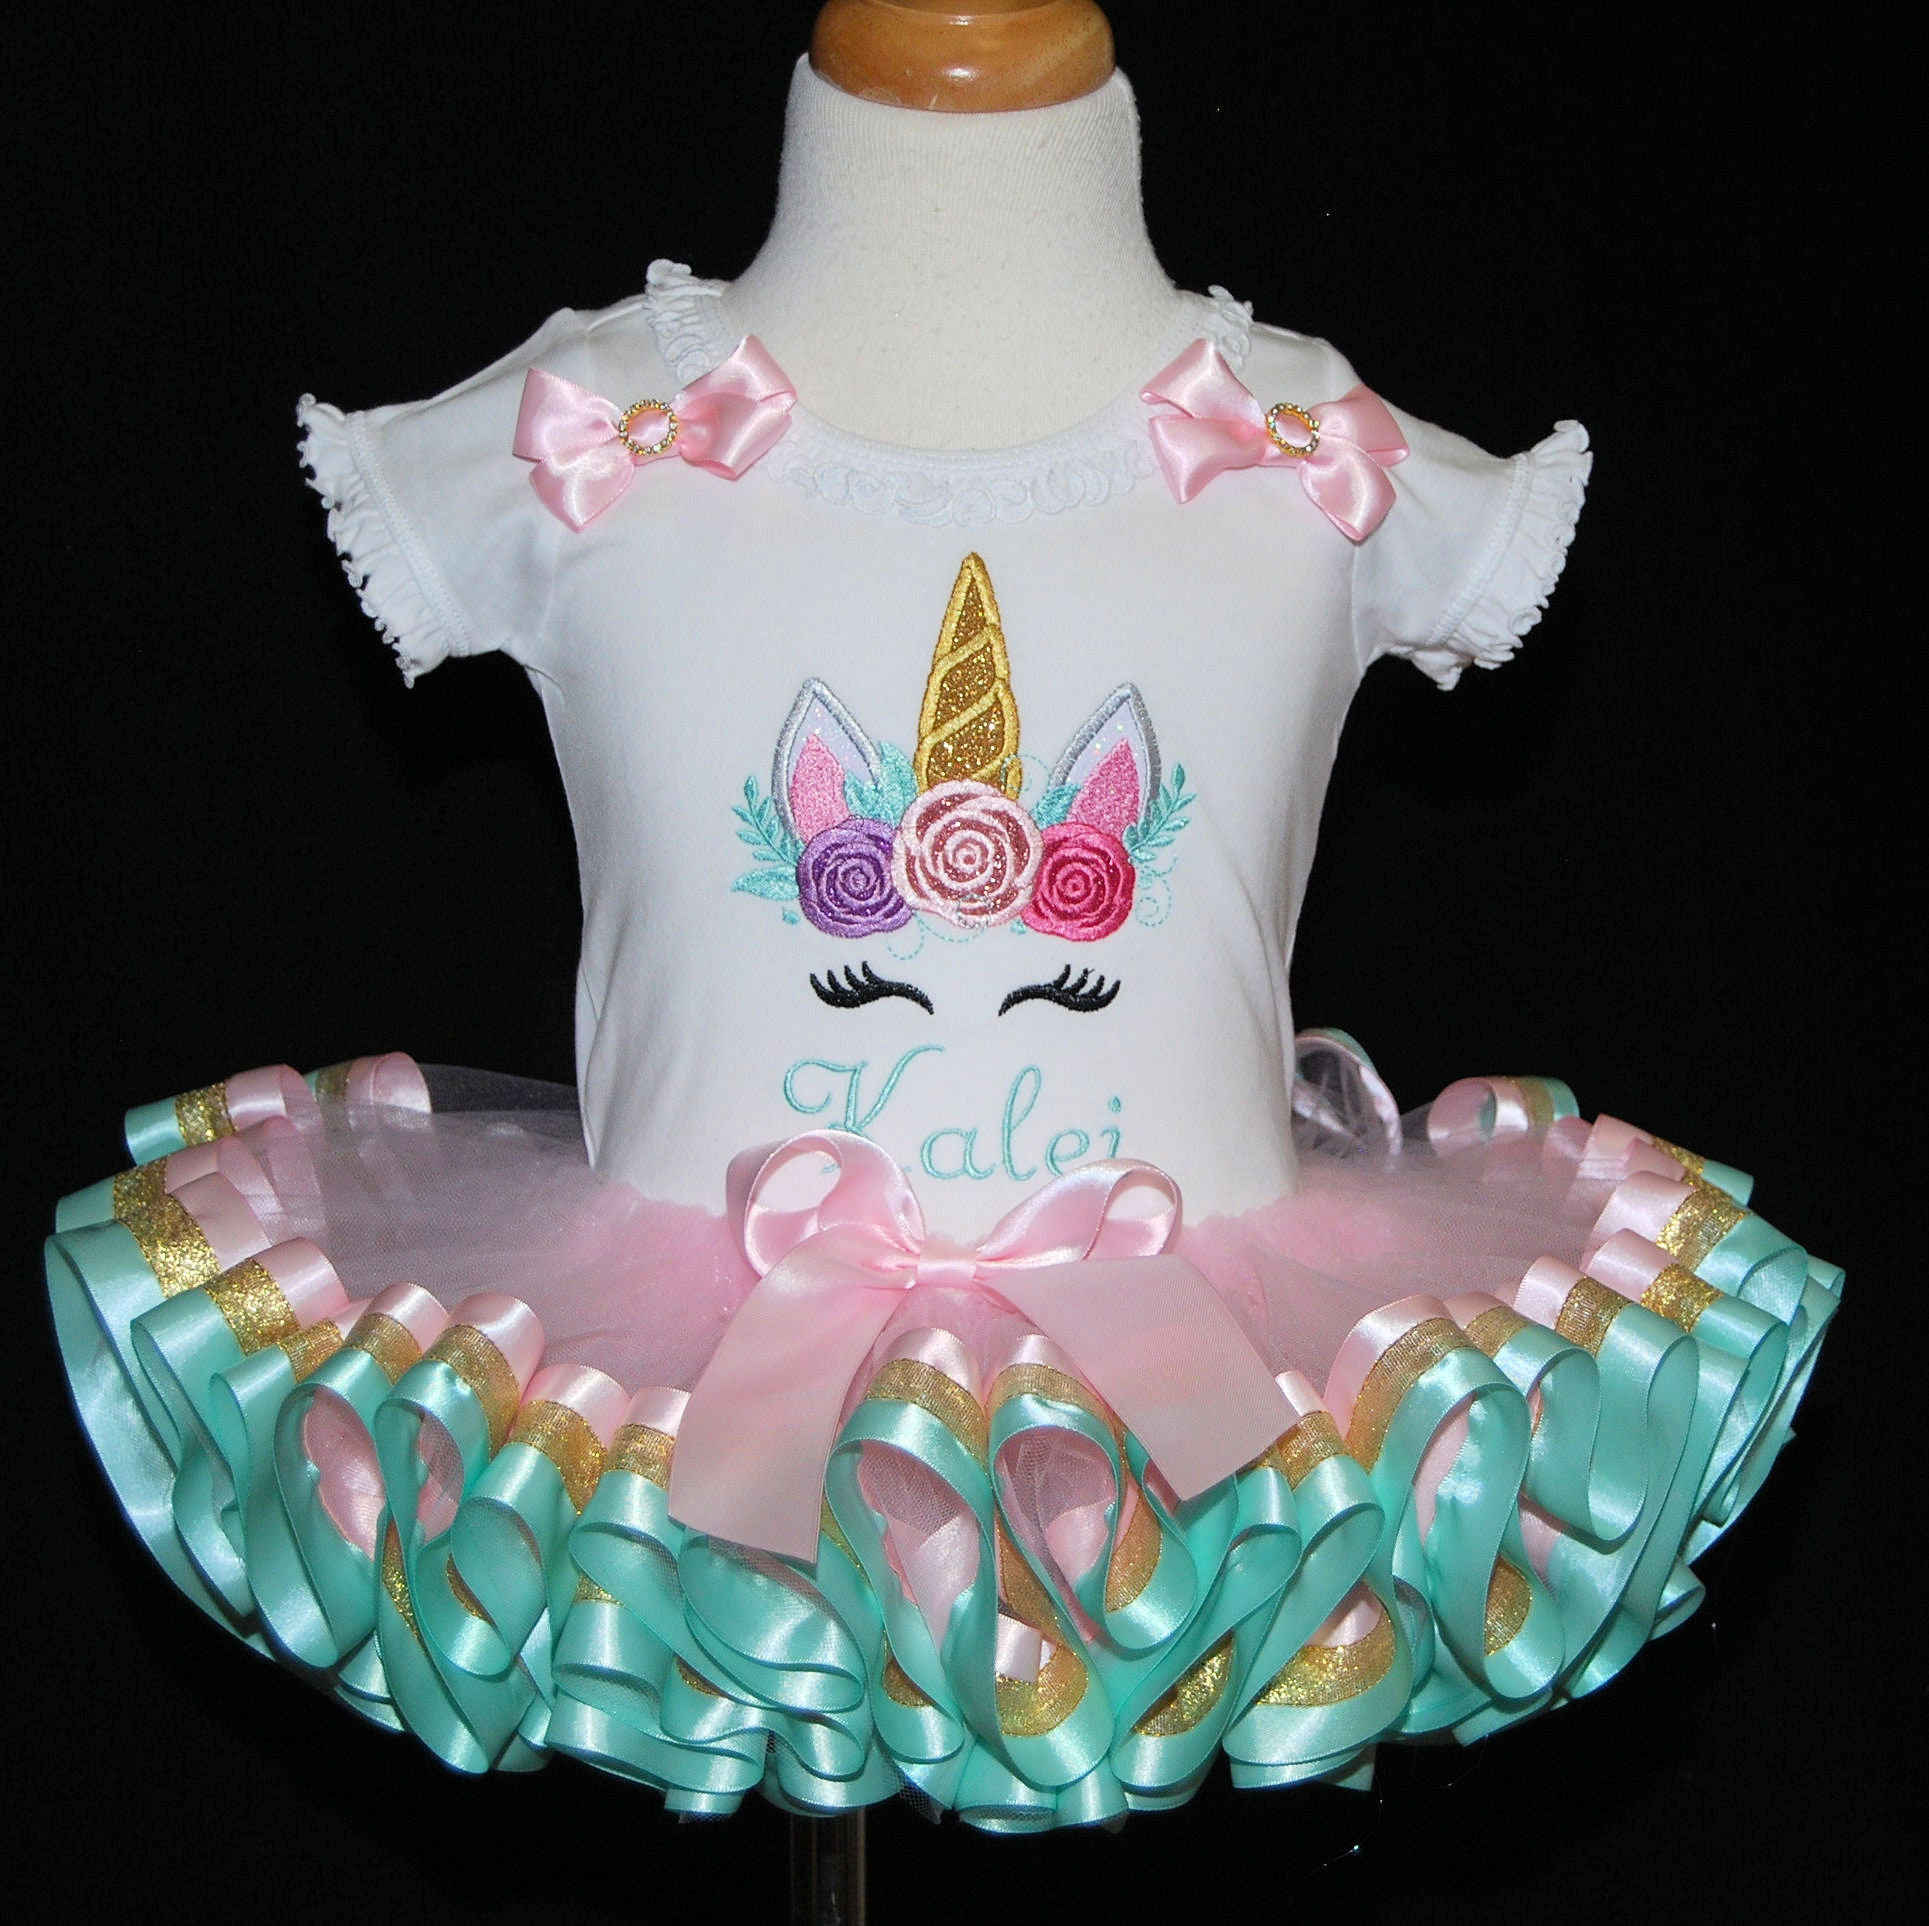 baby girl 1st birthday outfit, unicorn birthday outfit pastel tutu dress 1st birthday unicorn outfit personalized smash cake outfit girl